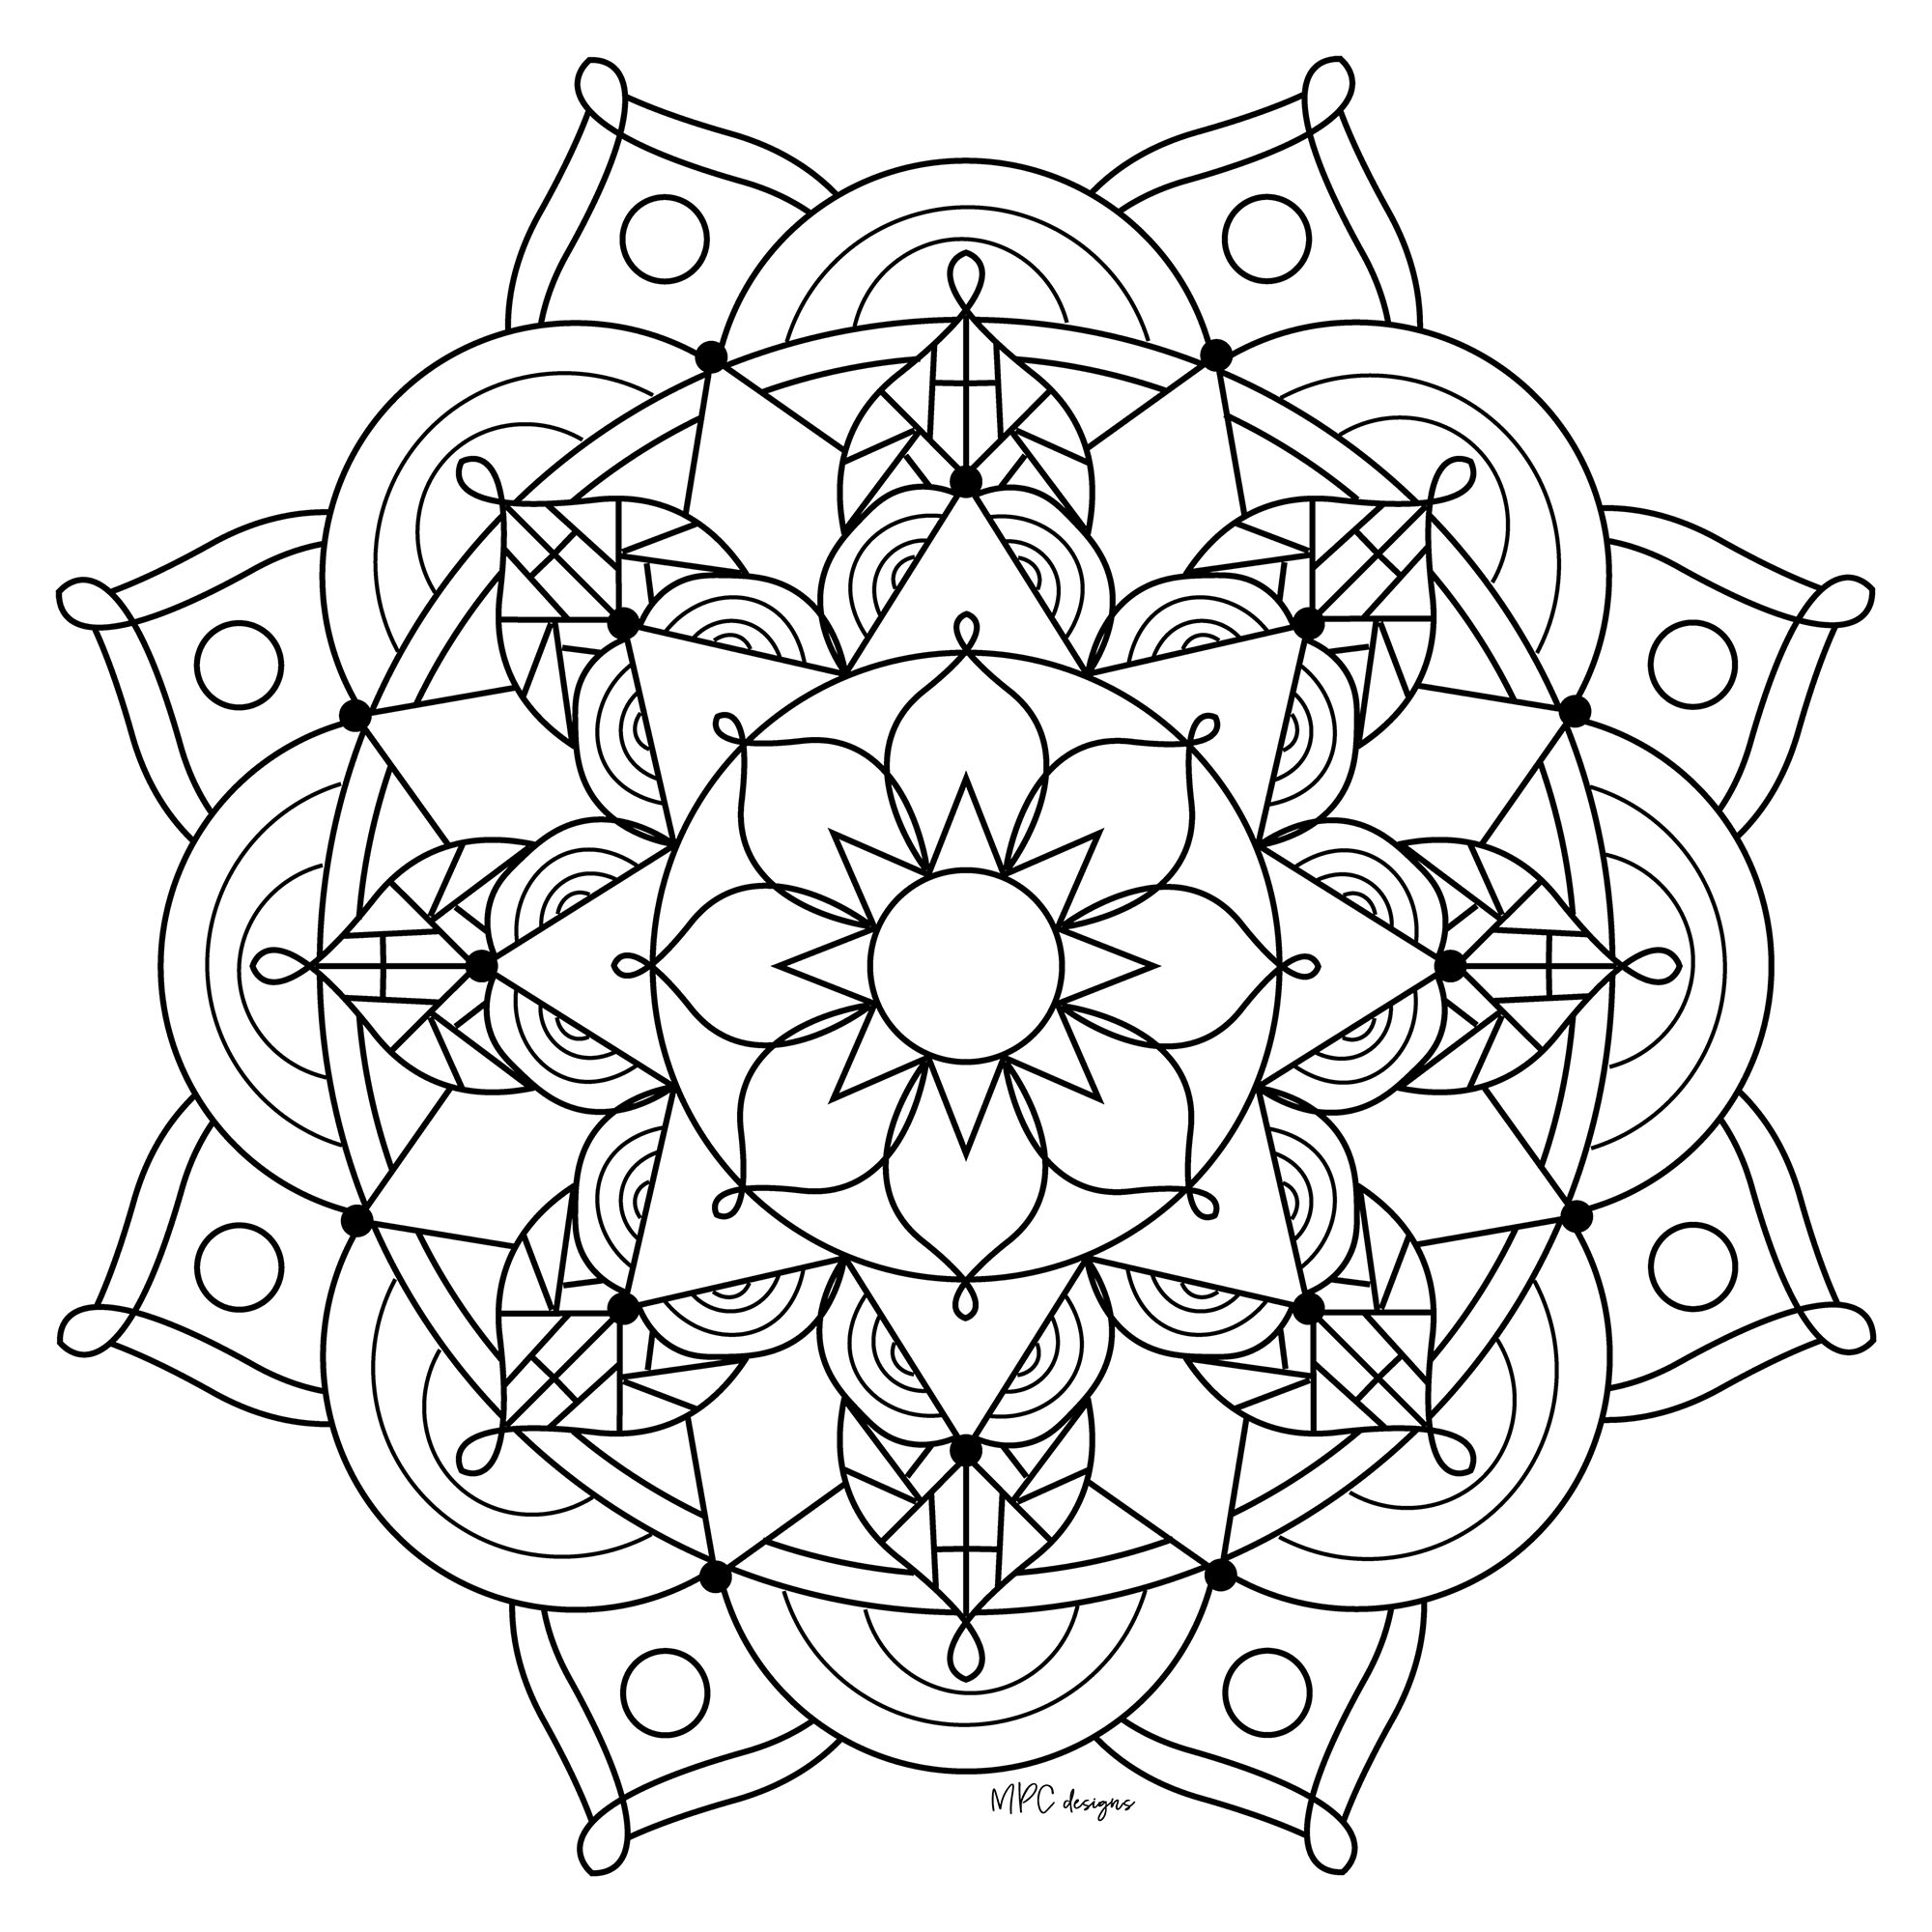 free printable mandalas for adults mandala from free coloring books for adults 24 malas adults printable free mandalas for